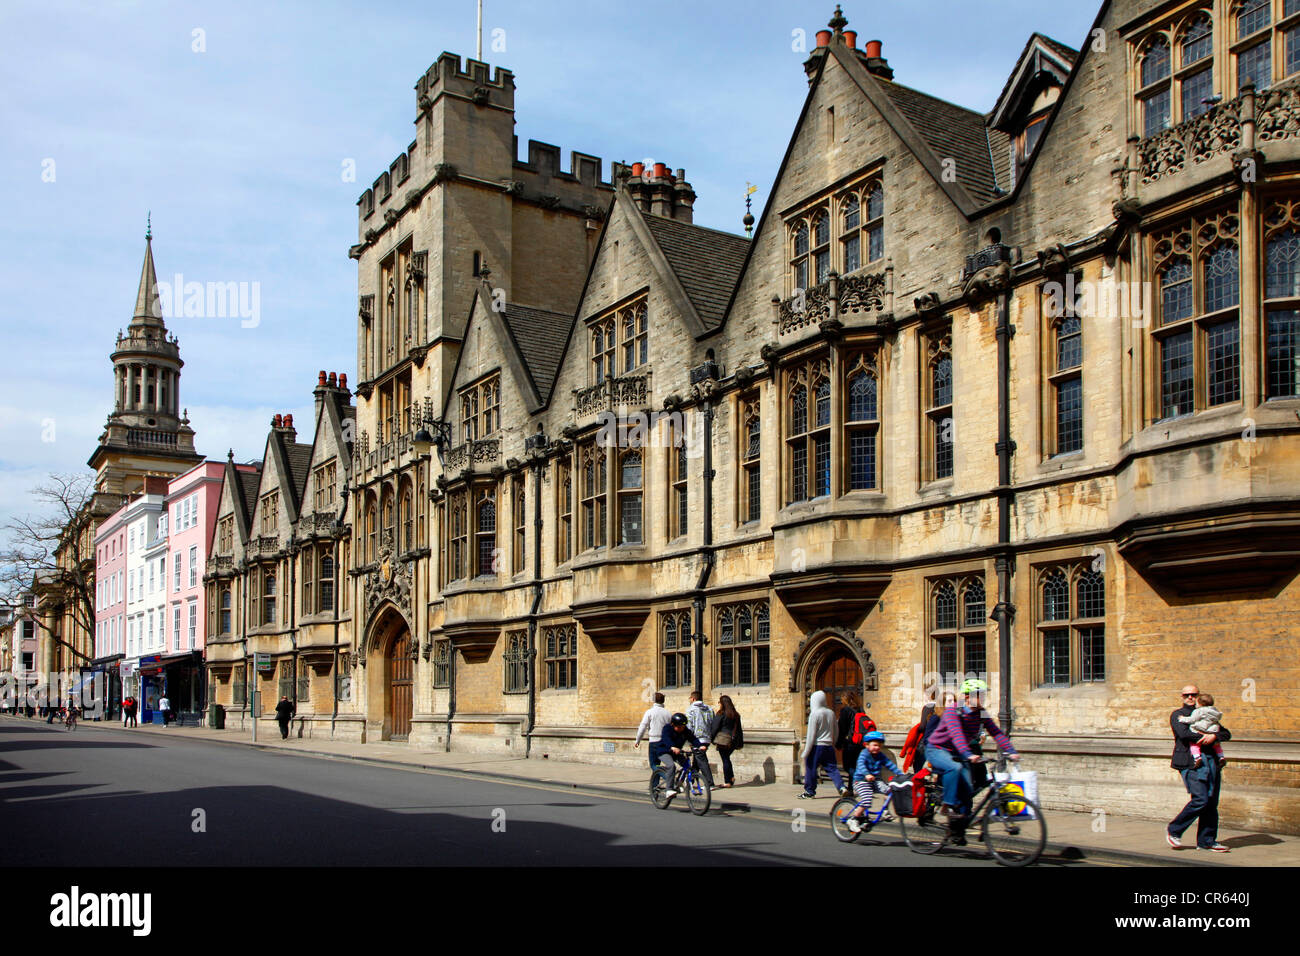 Downtown, High Street, Brasenose College. Oxford, Oxfordshire, UK, Europe - Stock Image